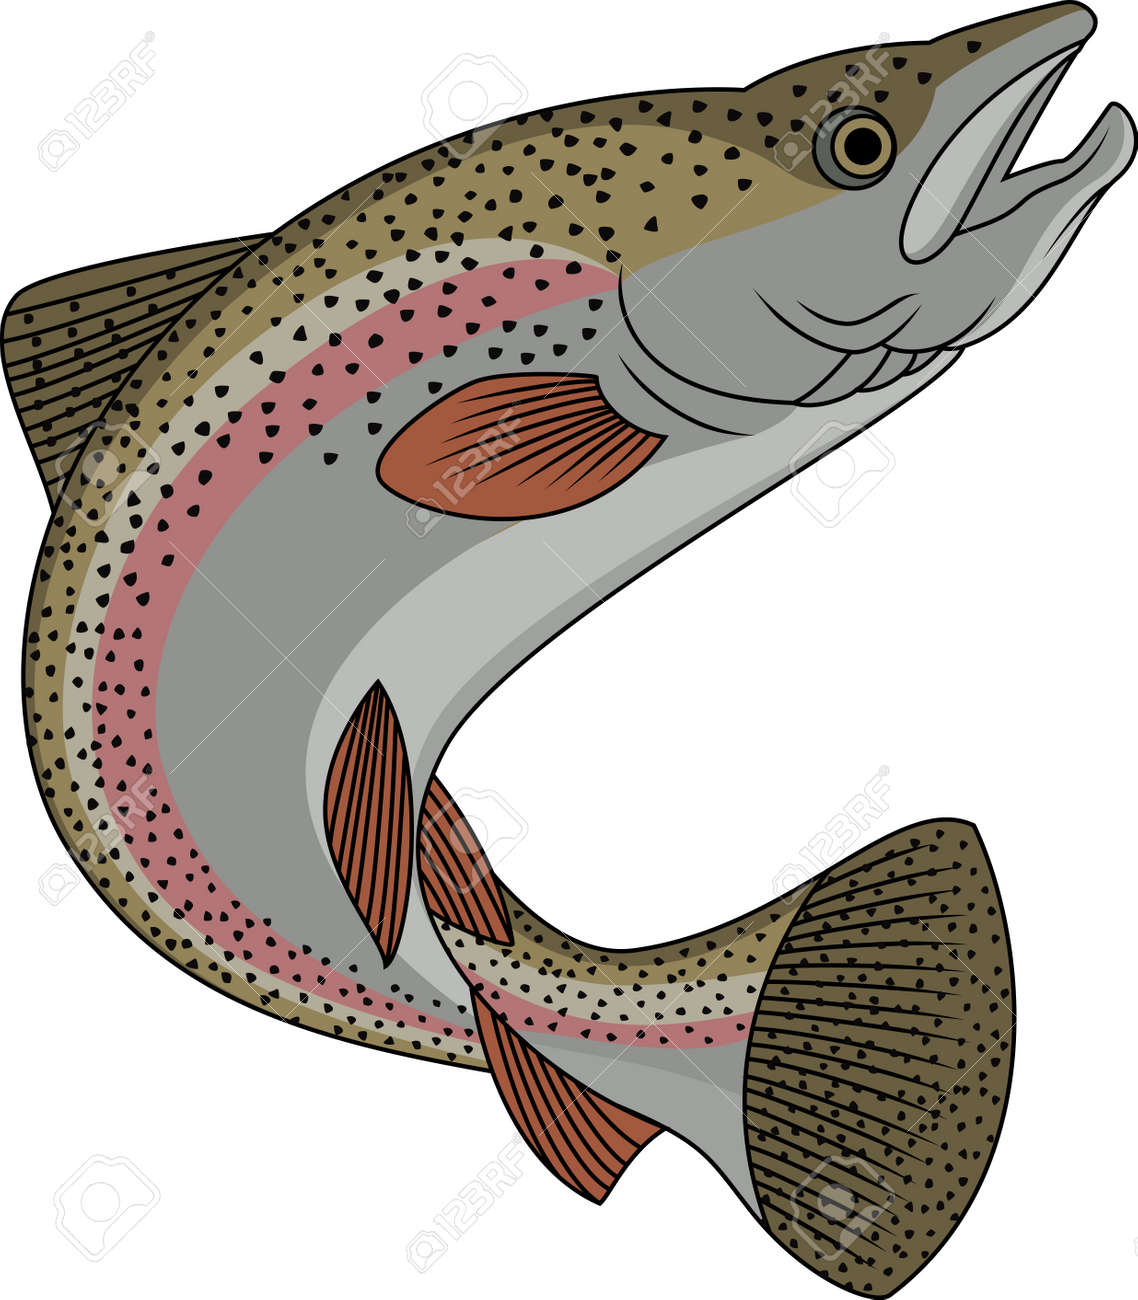 Freshwater fish clipart - Freshwater Trout Fish